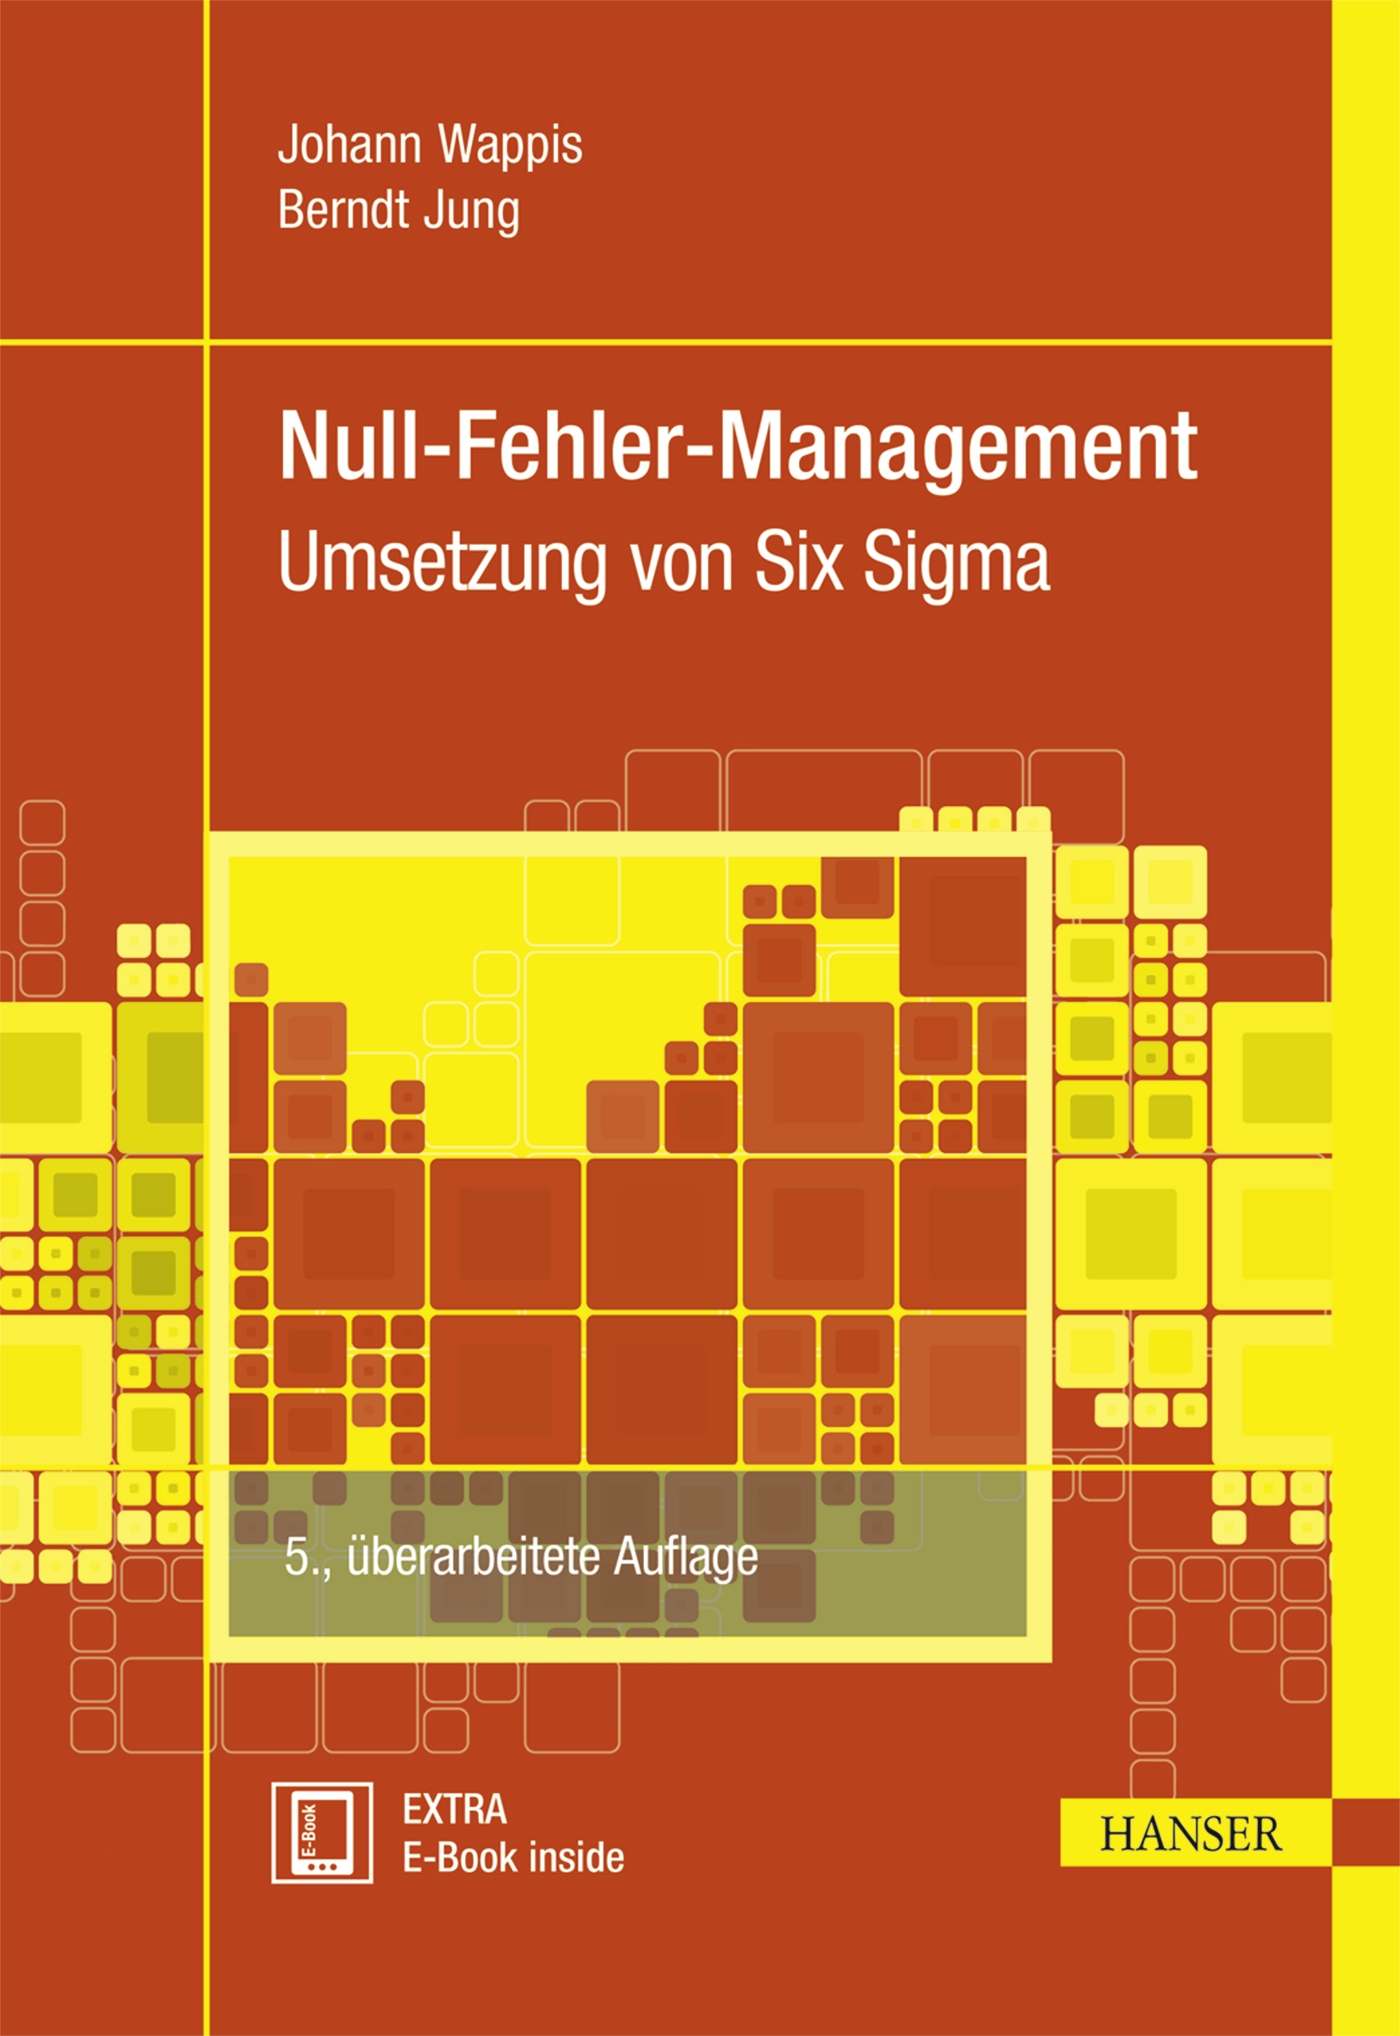 Wappis, Jung, Null-Fehler-Management, 978-3-446-44630-4